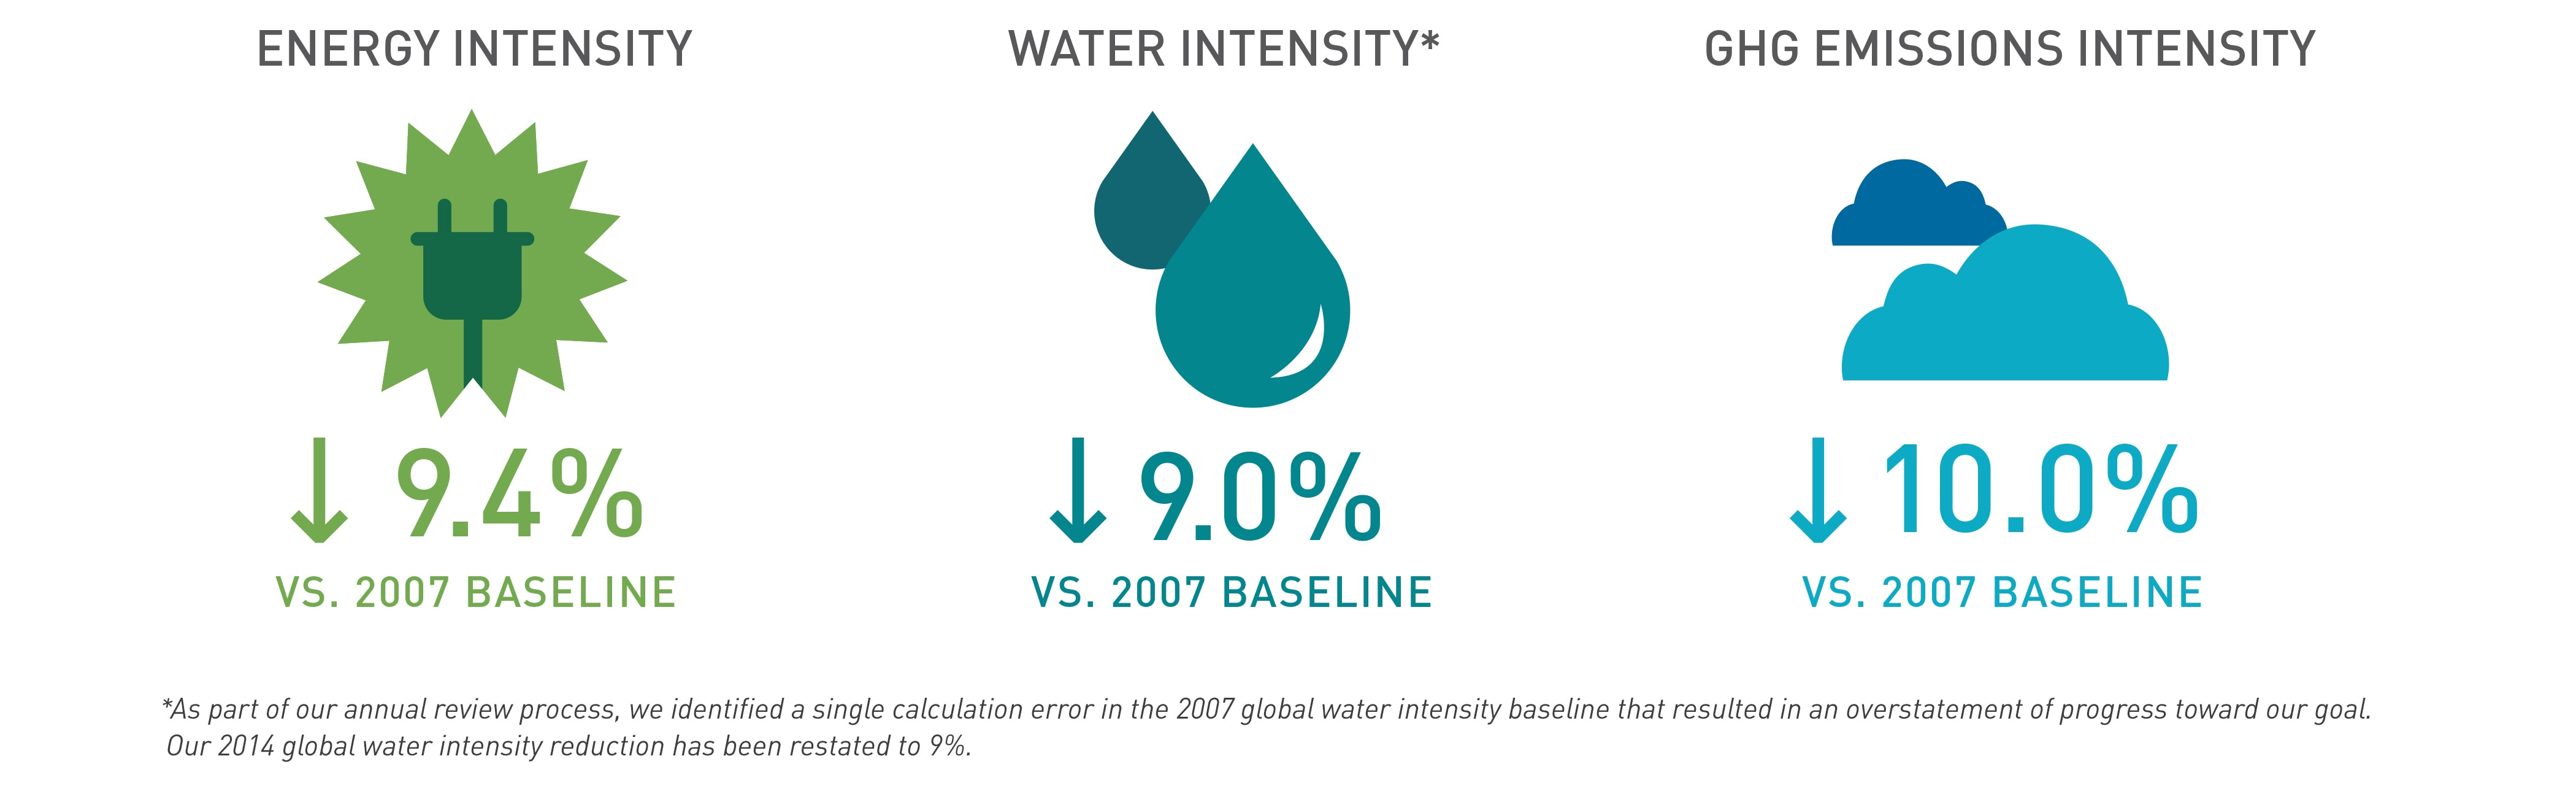 Sustainability Goal Infographic: Energy/Water/EGH Emissions Intensity.